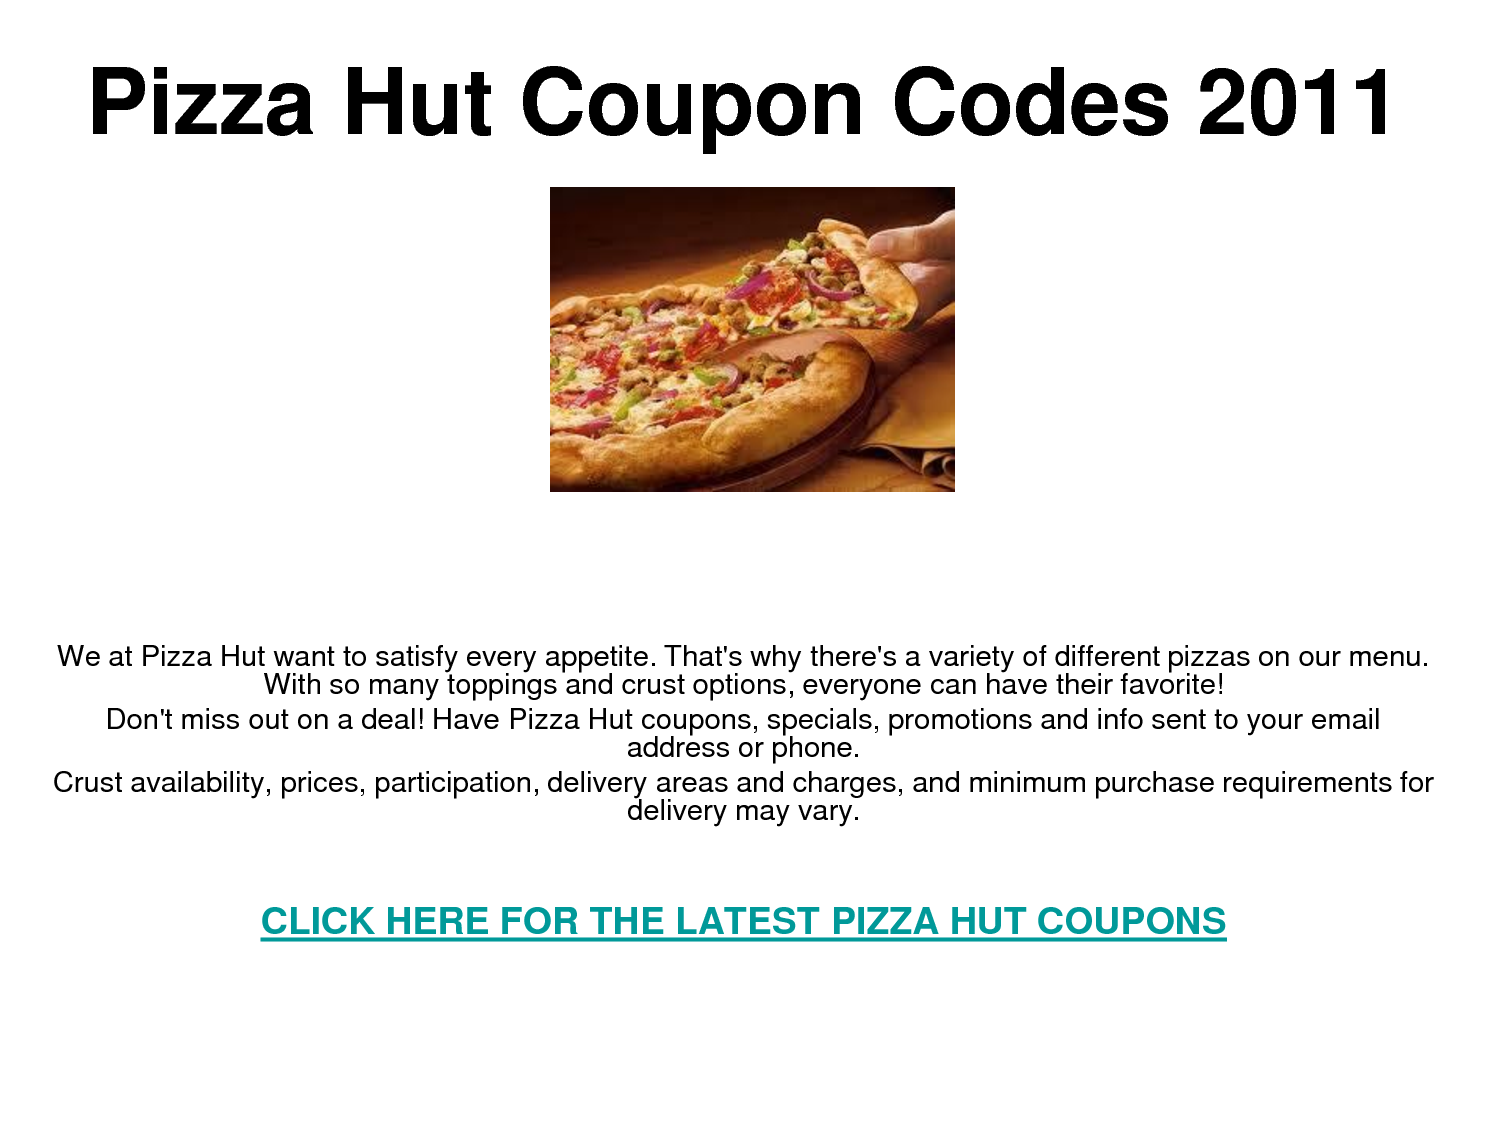 Pizza discount coupons